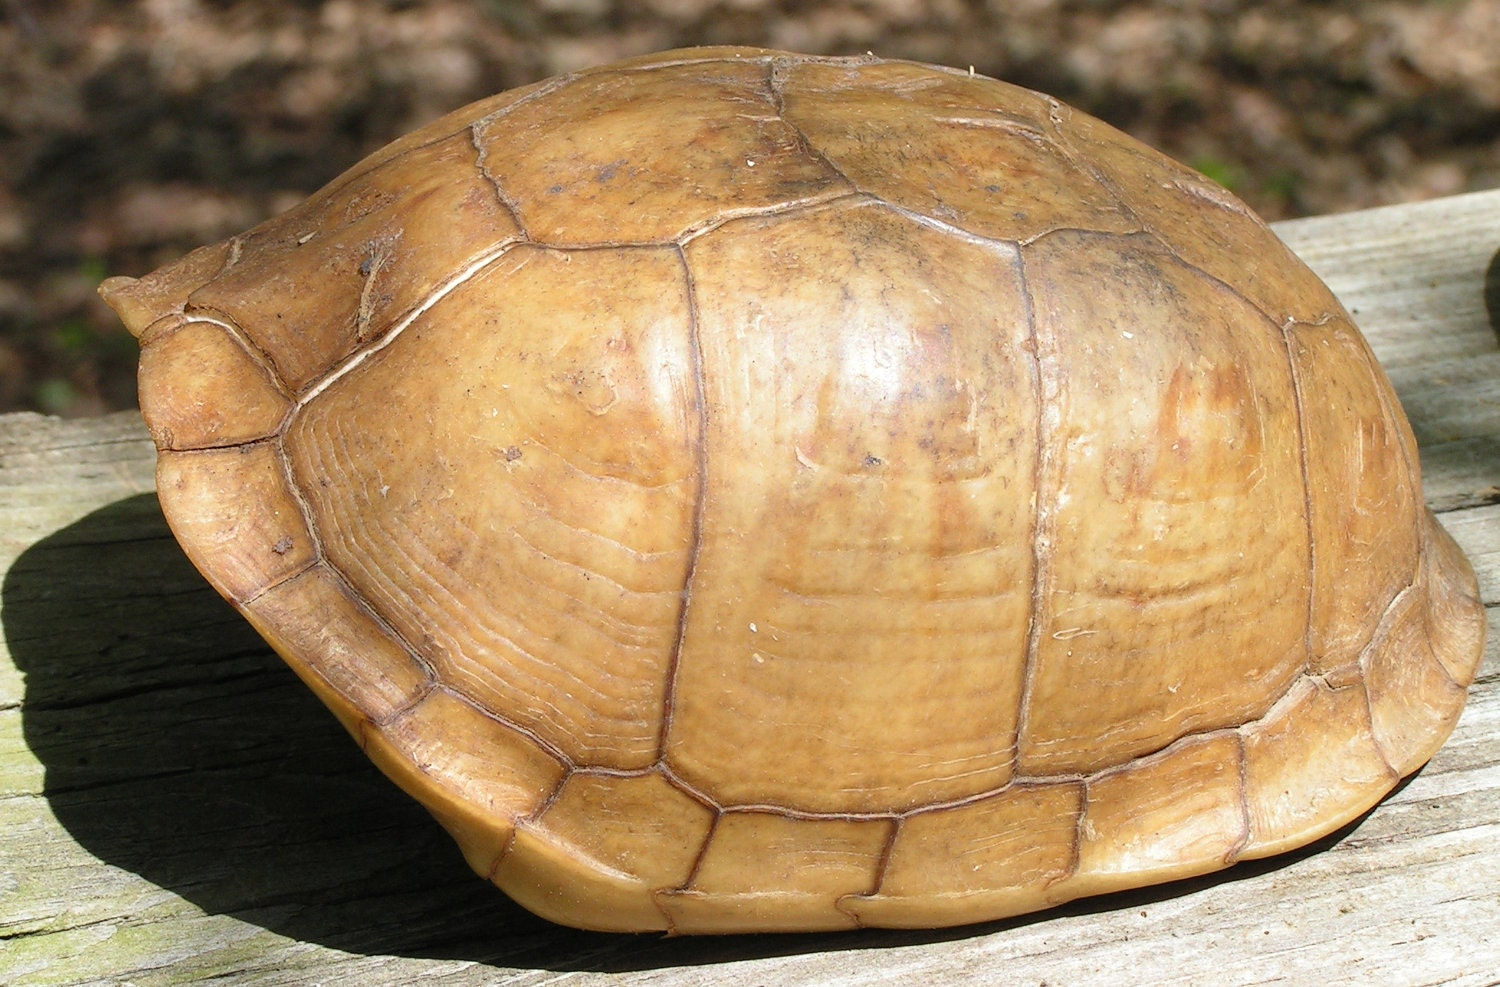 The turtle shell is made up of numerous bony elements generally named after similar bones in other vertebrates and a series of keratinous scutes which are also